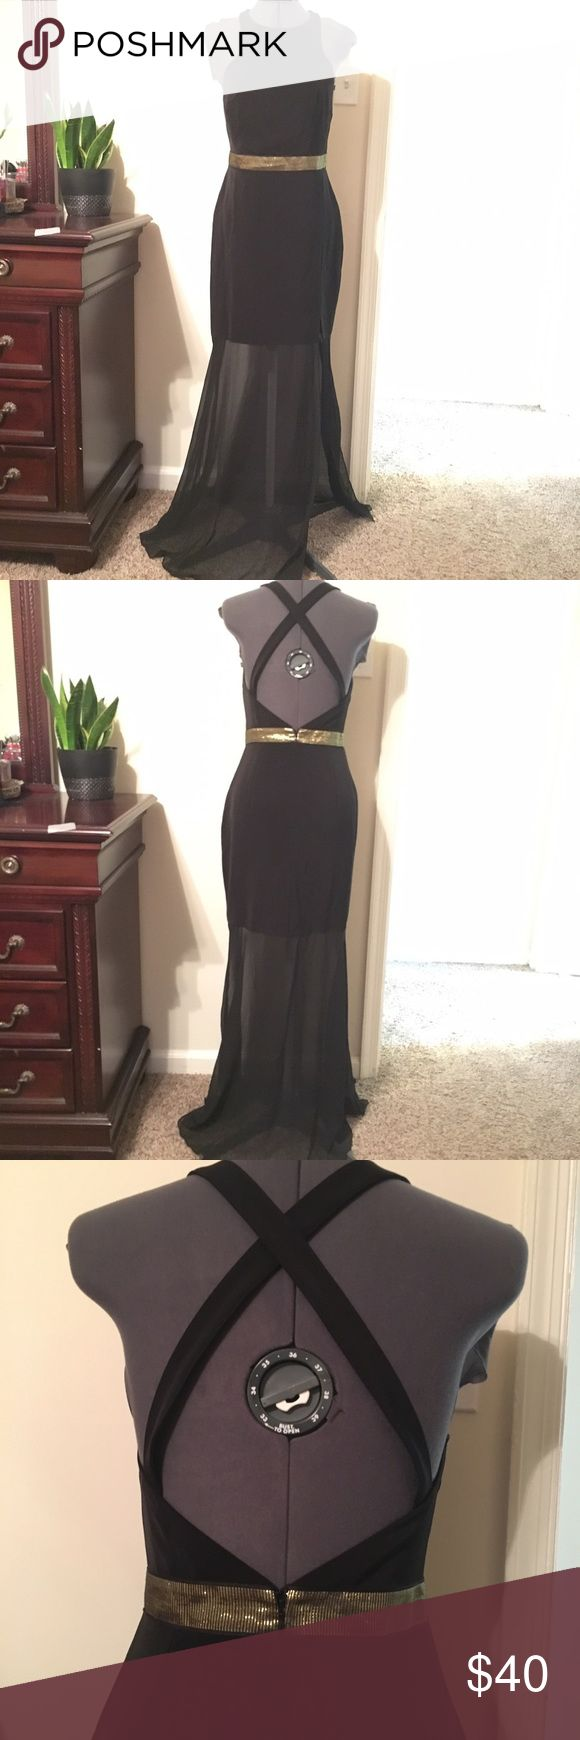 Express black high neck dress Open back with cross cross straps, high neck, gold waistband, sheer skirt with side slit. Economic condition. Size 8 Express Dresses Maxi